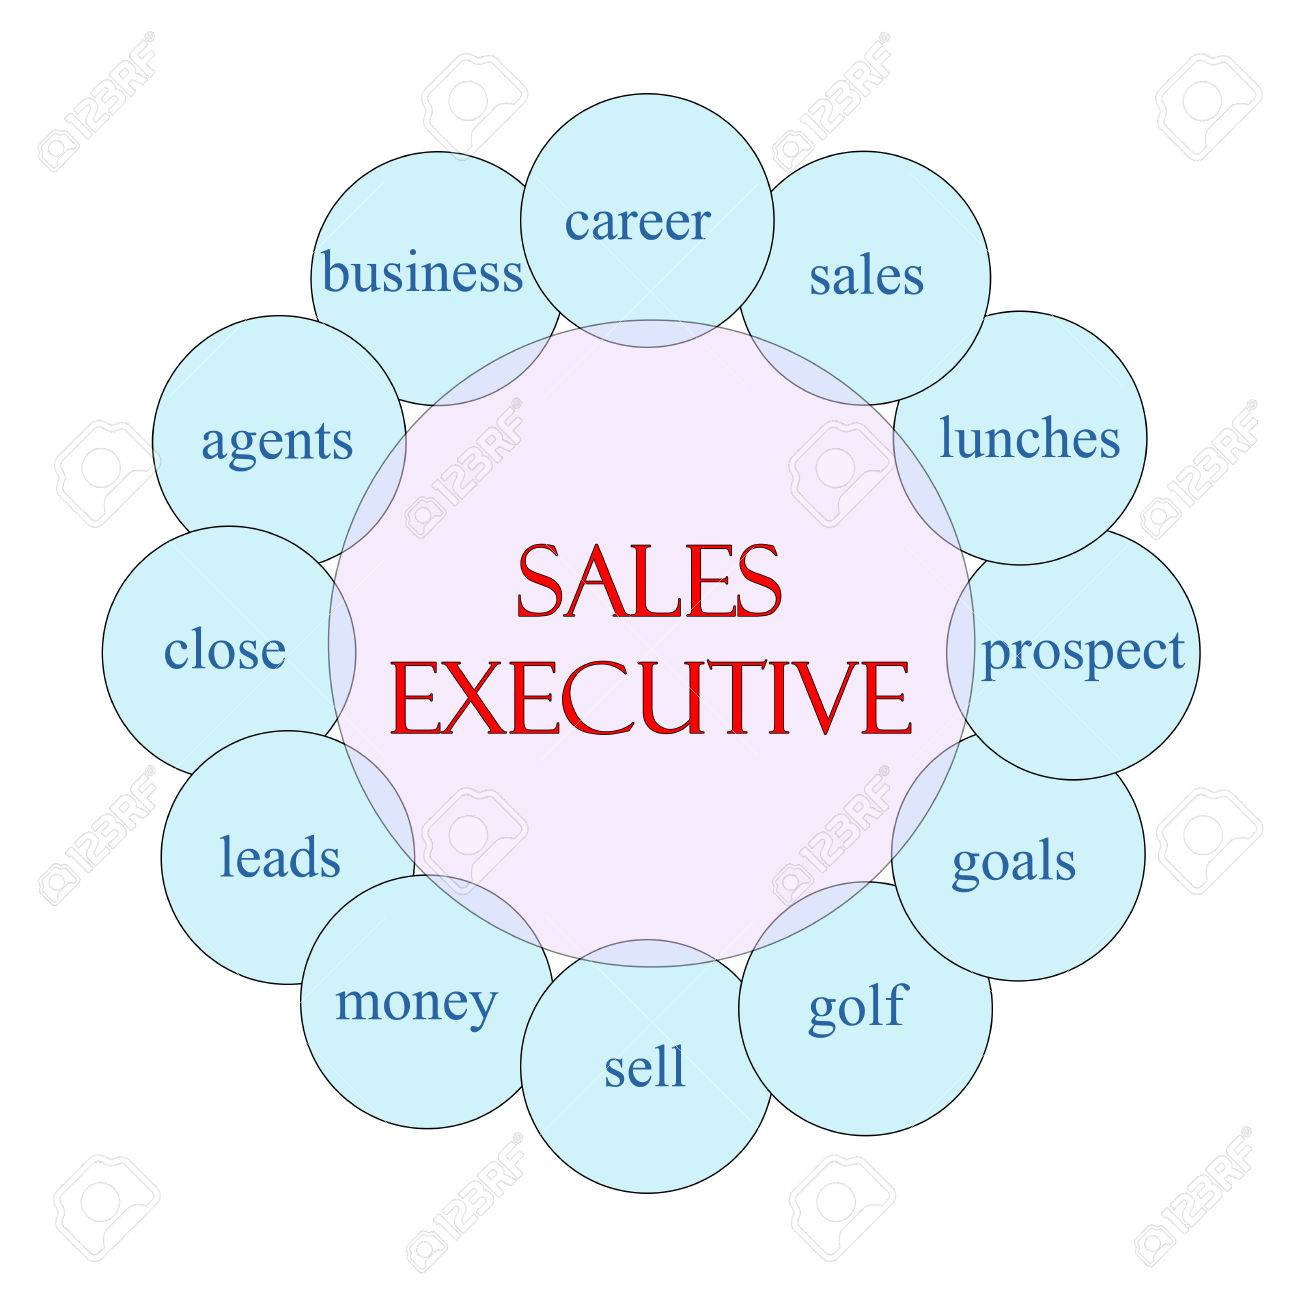 s executive concept circular diagram in pink and blue s executive concept circular diagram in pink and blue great terms such as career